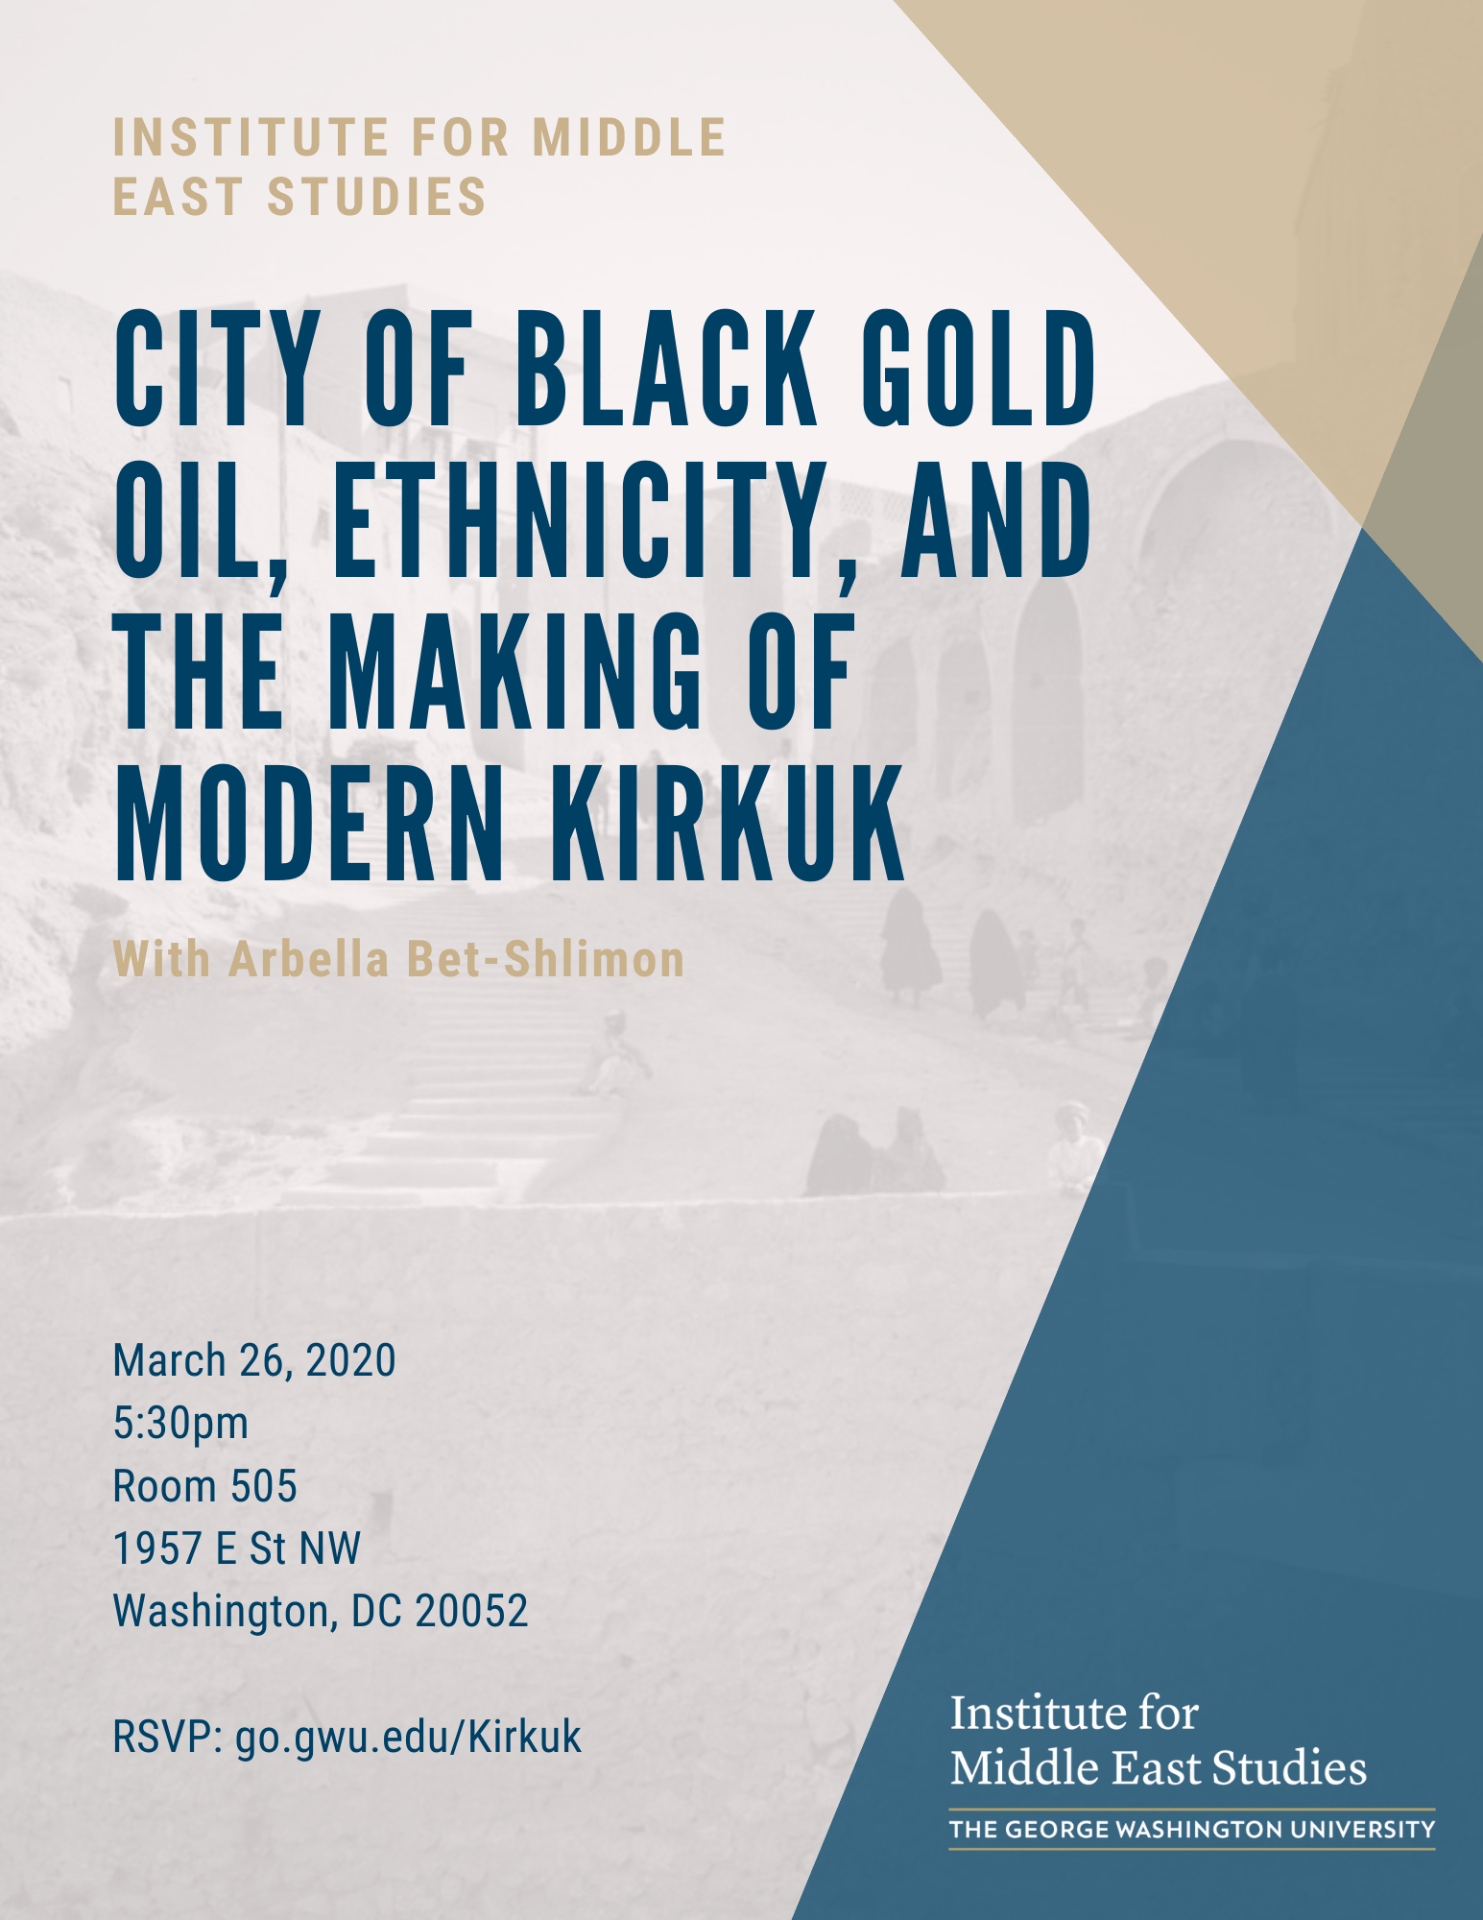 City of Black Gold Oil, Ethnicity, and the Making of Modern Kirkuk